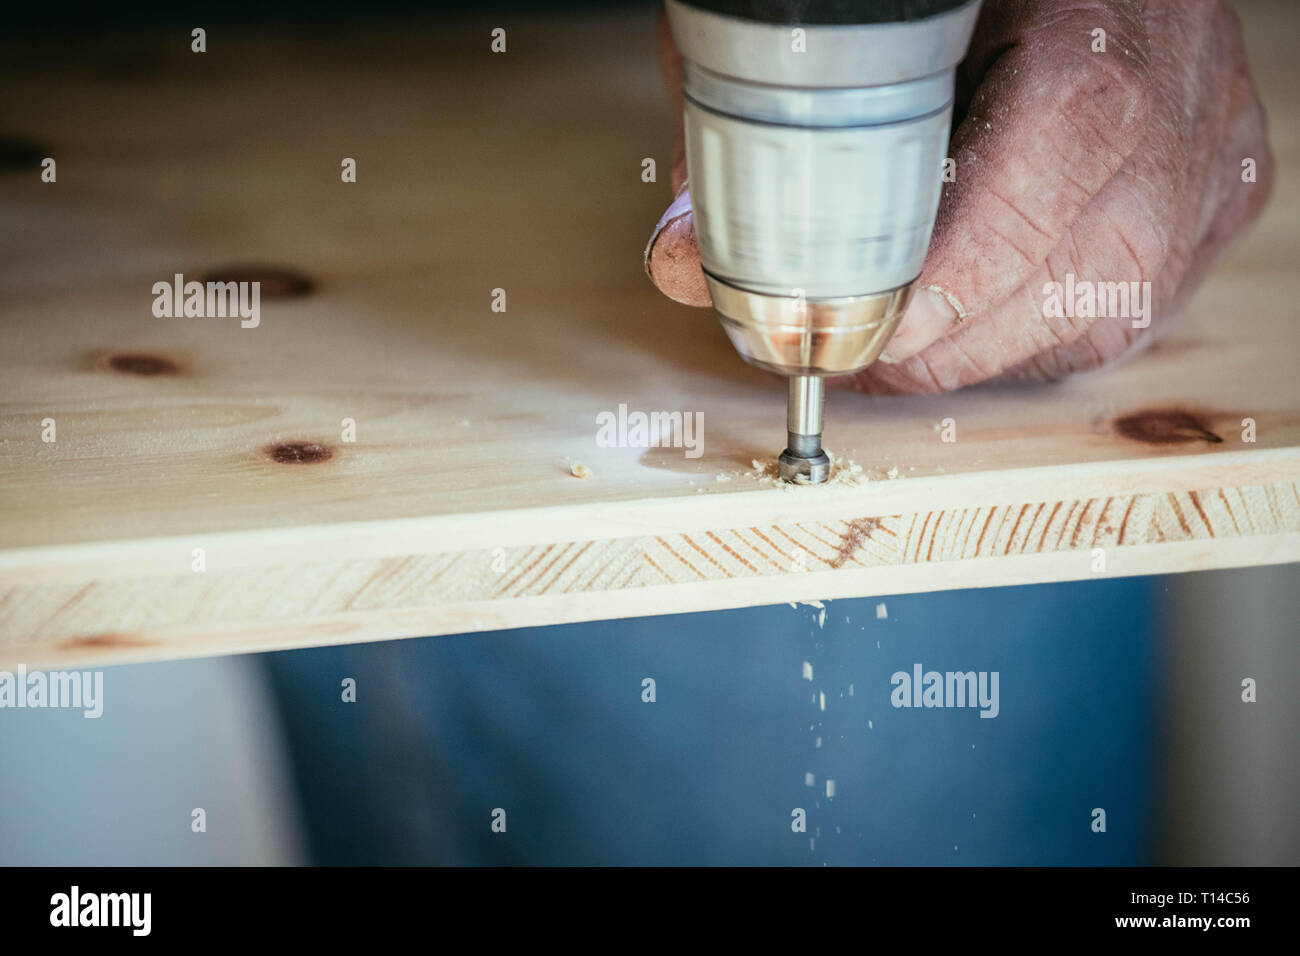 Craftsman is drilling in wood with drilling machine Stock Photo